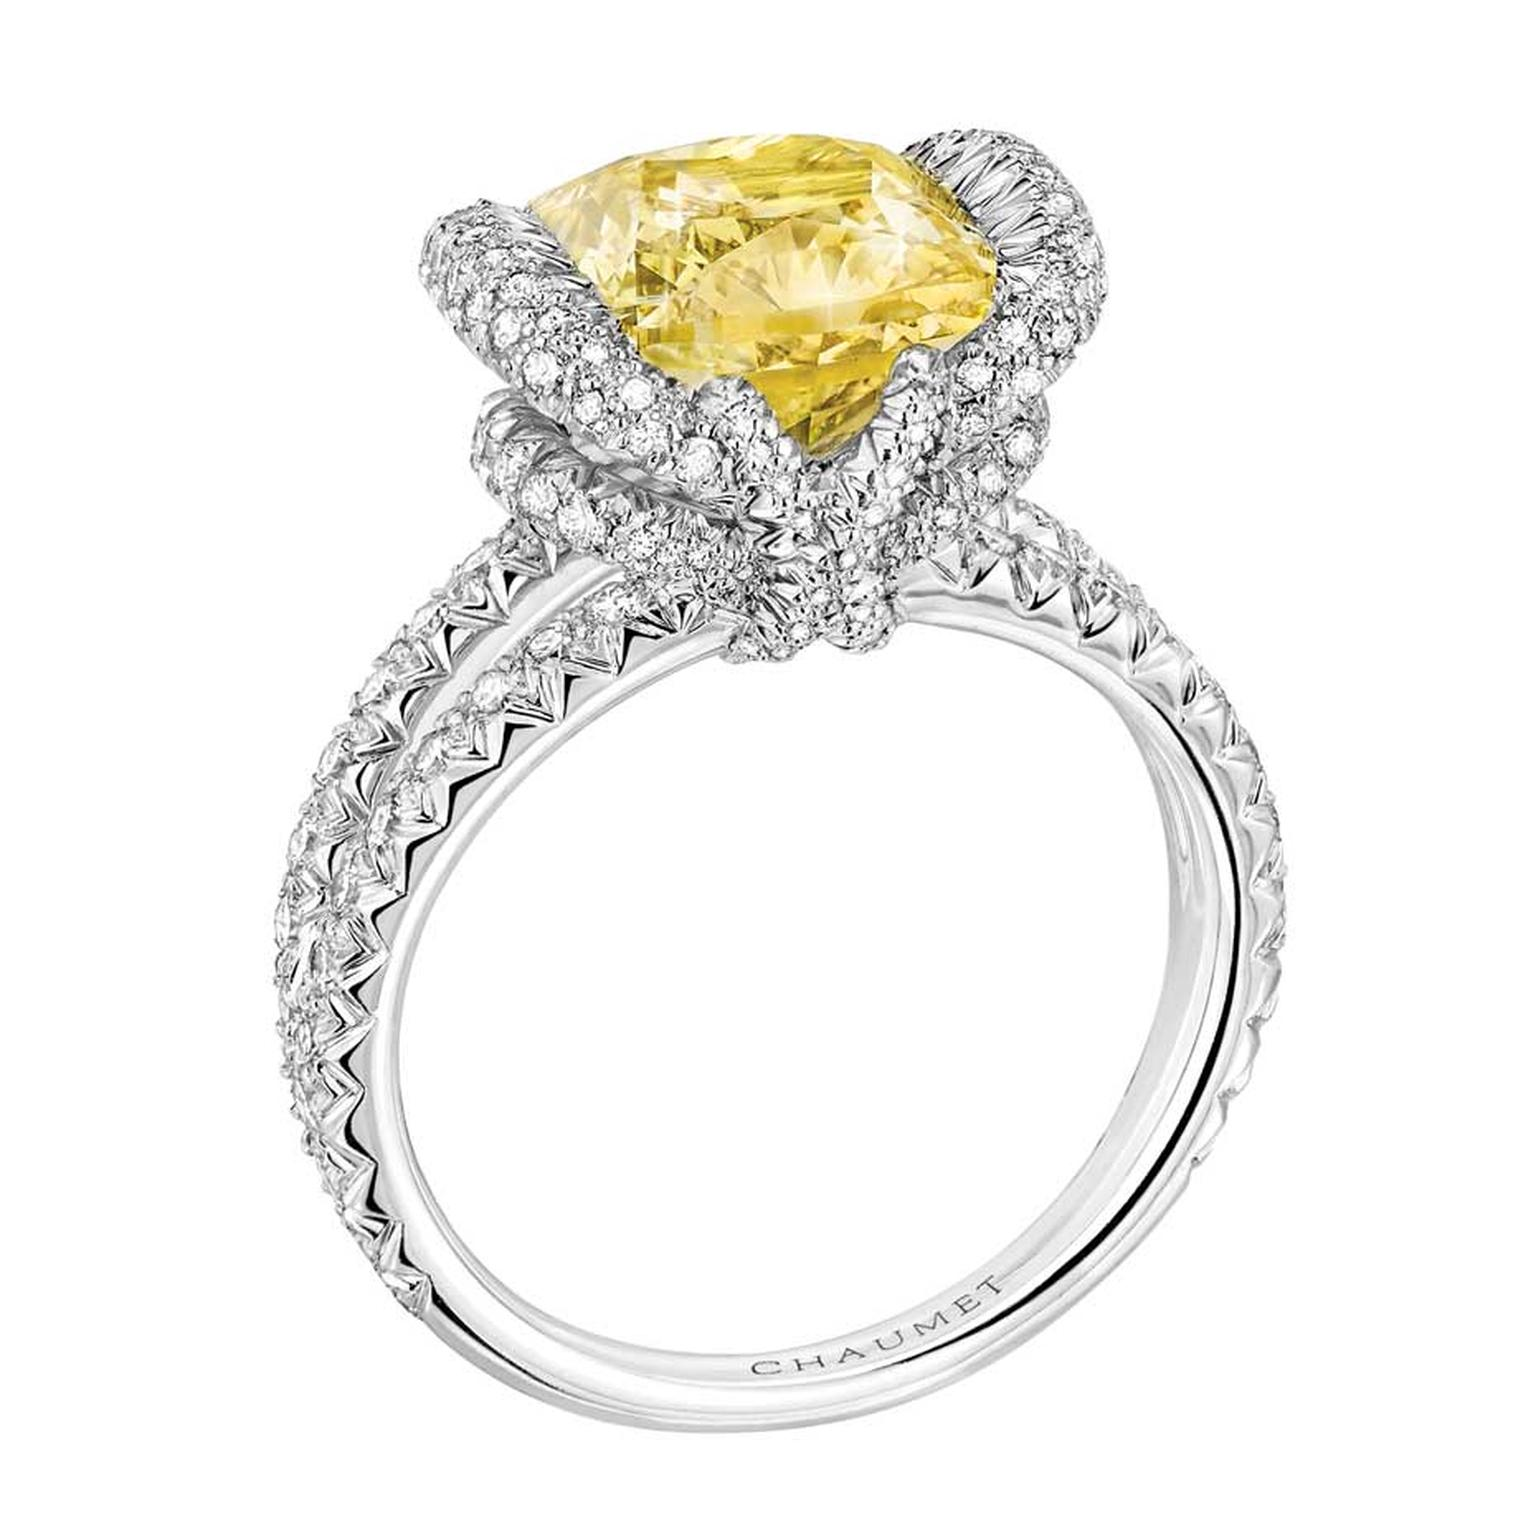 Chaumet Liens high jewellery ring in white gold featuring 144 brilliant-cut diamonds and a 3.41ct cushion-cut yellow diamond